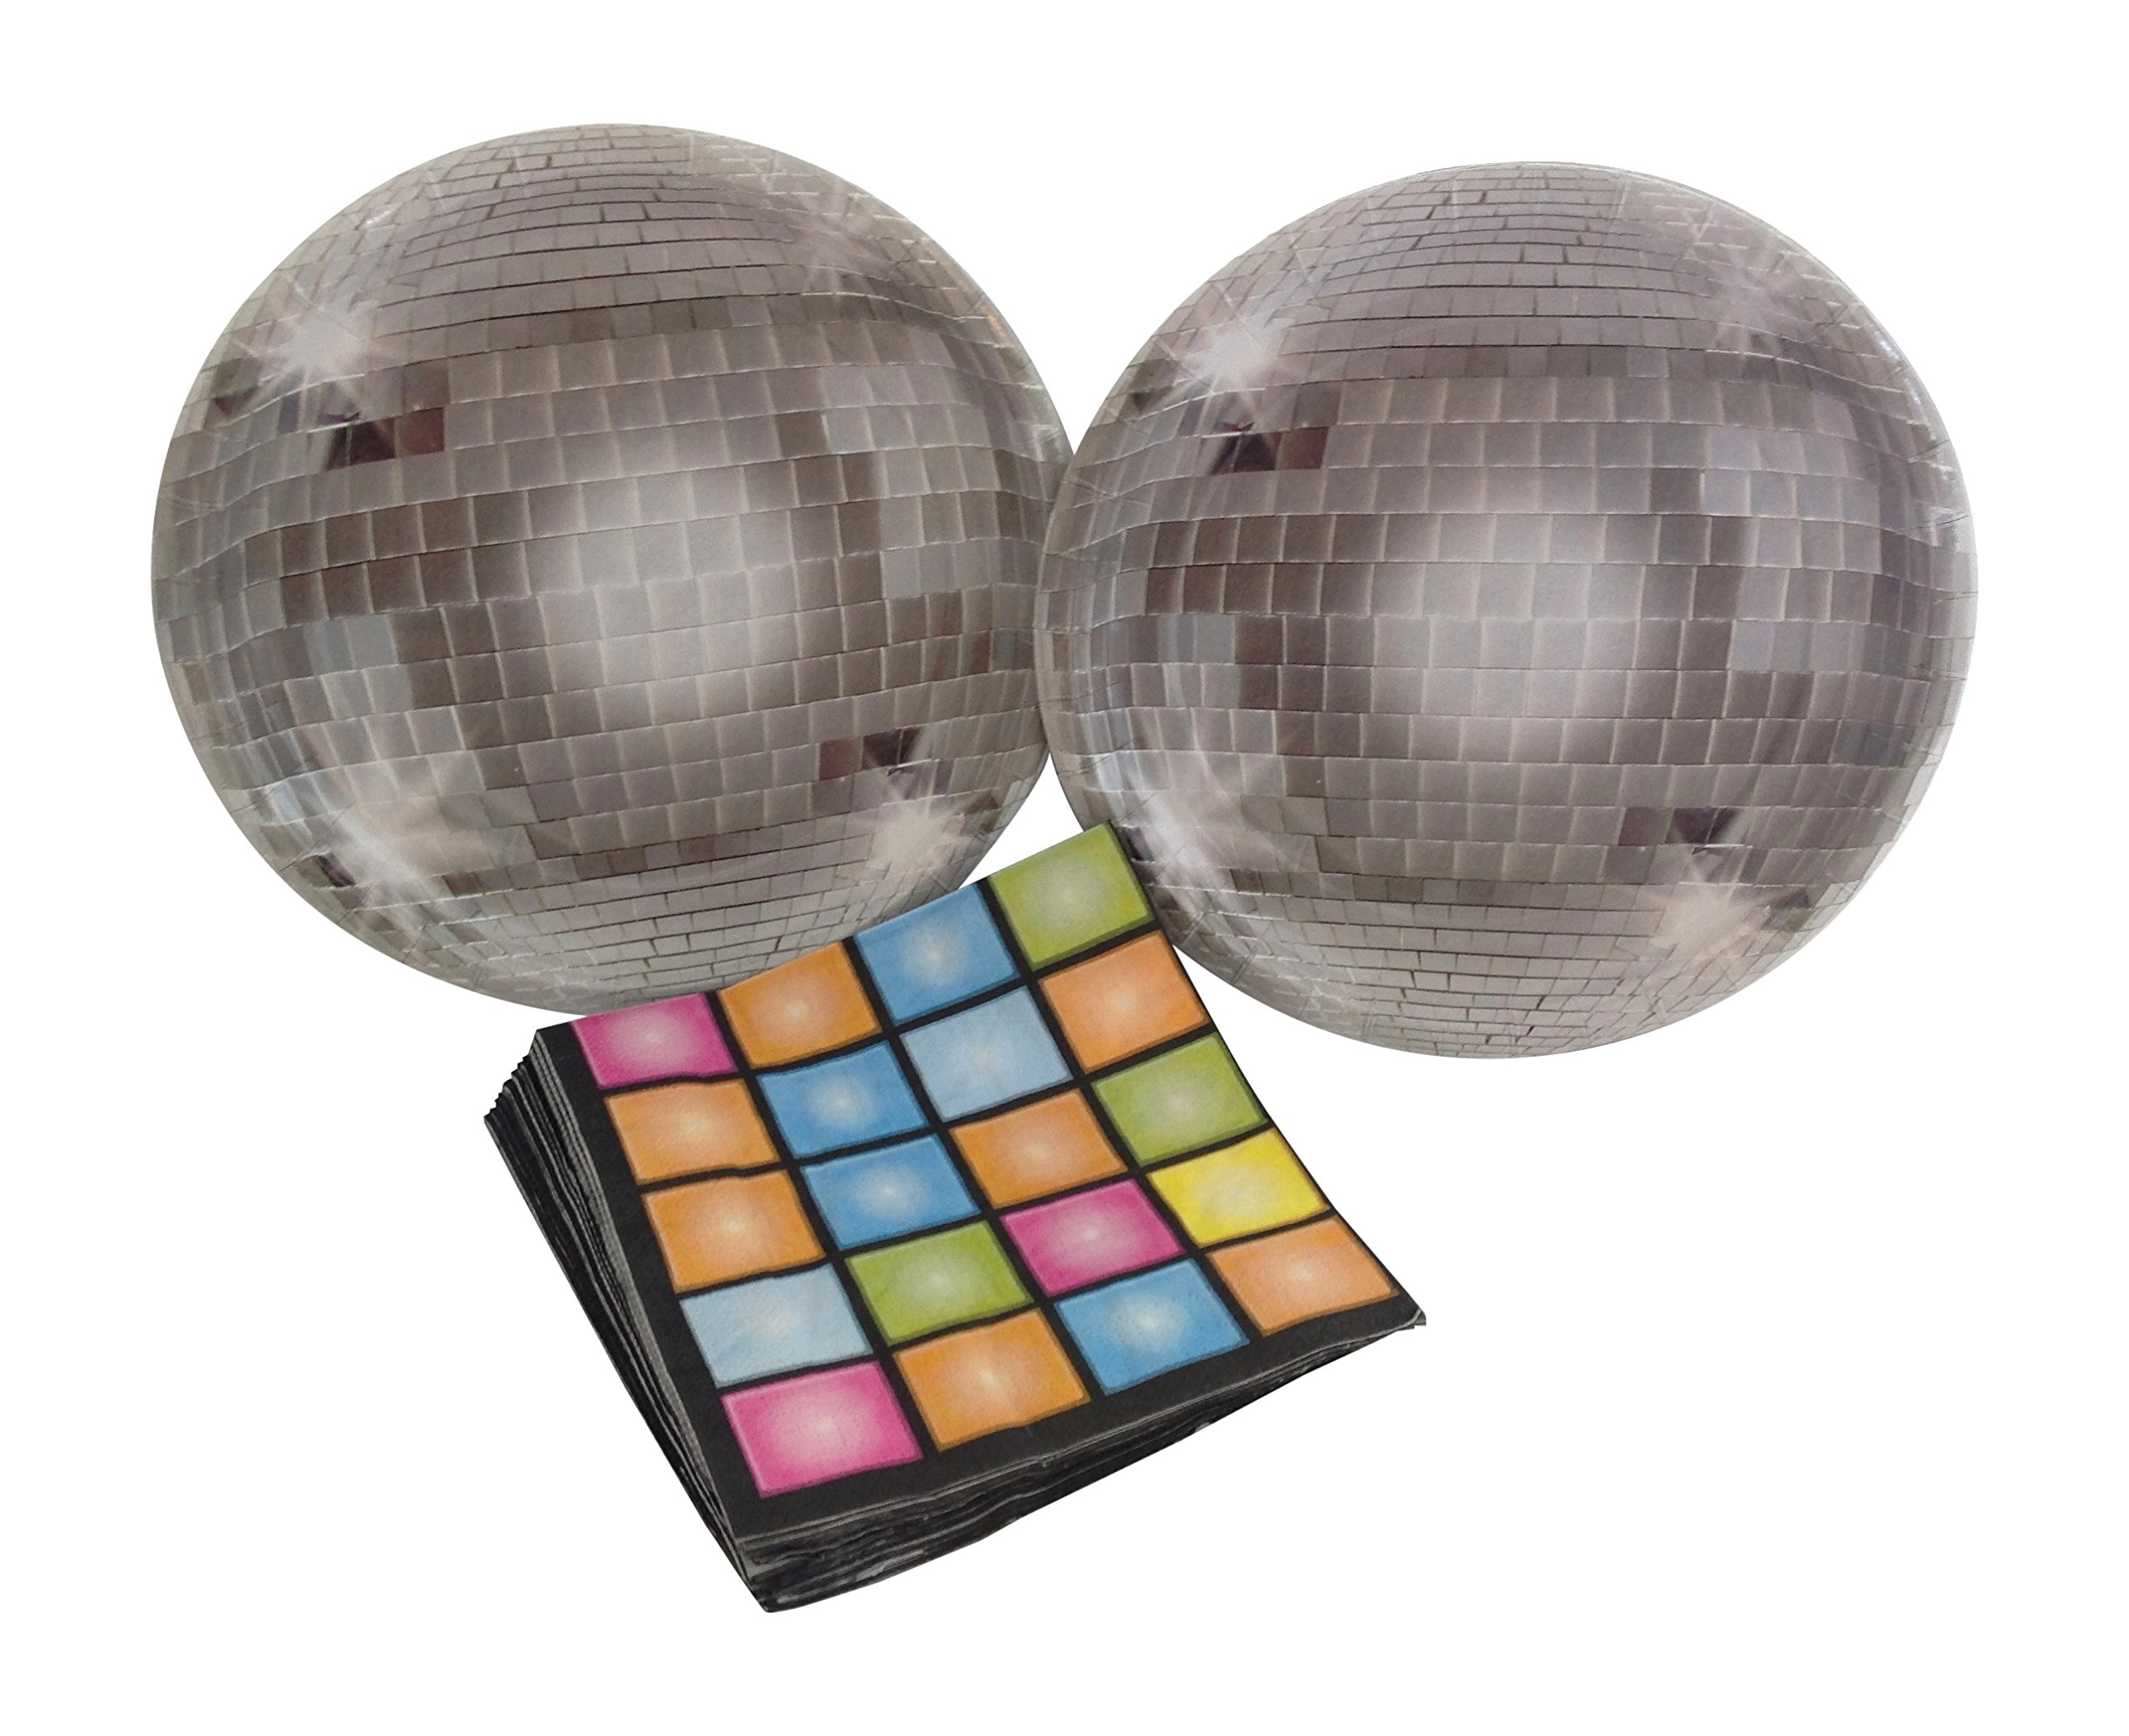 Disco Ball 70's Party Bundle with Paper Plates and Napkins for 16 Guests